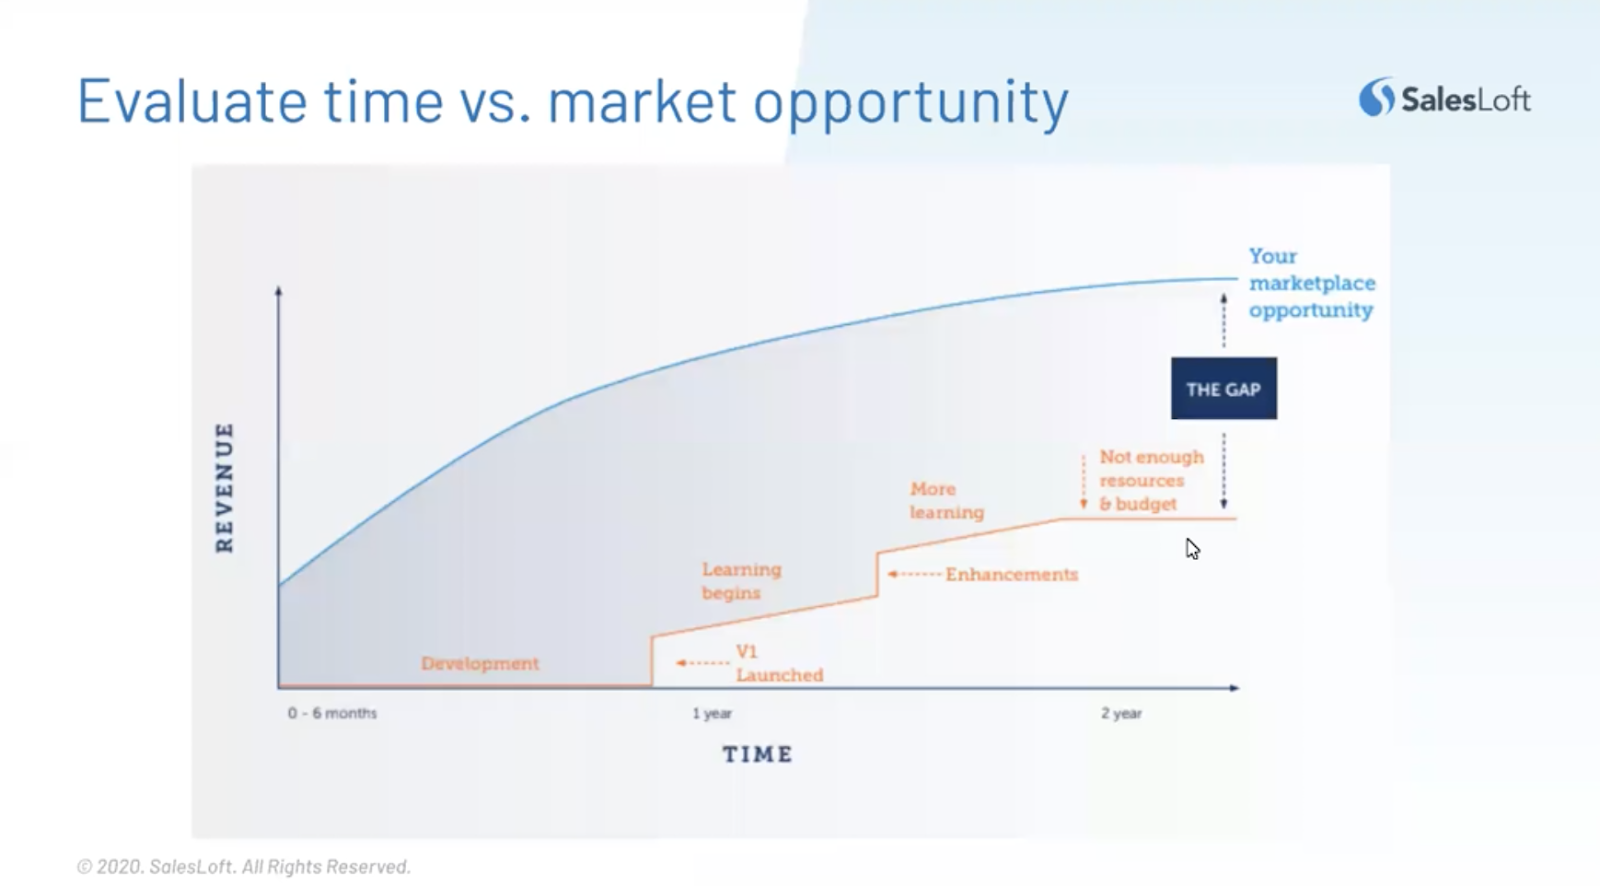 Evaluate time vs market opportunity.